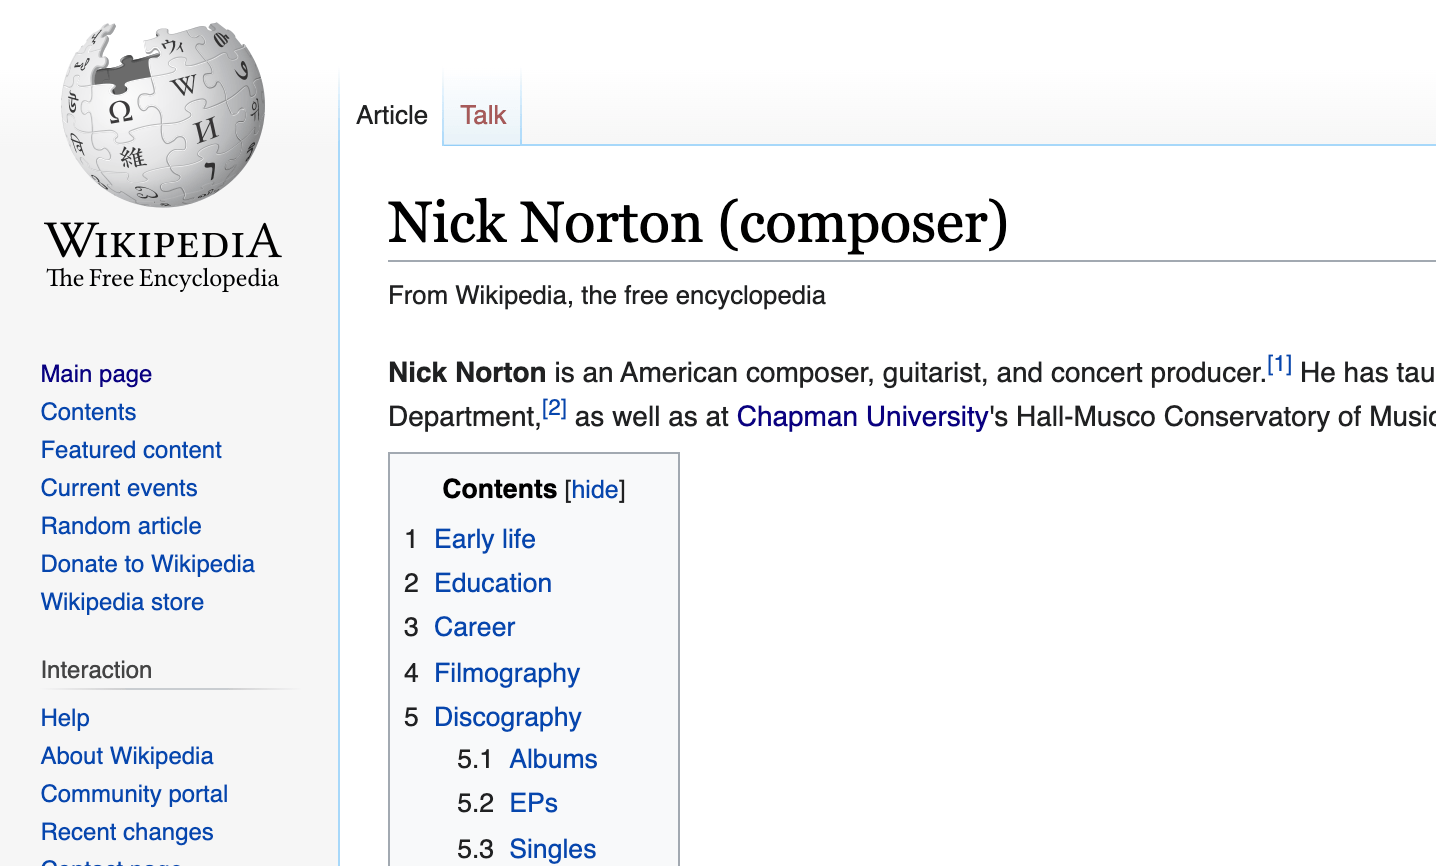 A screenshot of the Wikipedia entry for Nick Norton